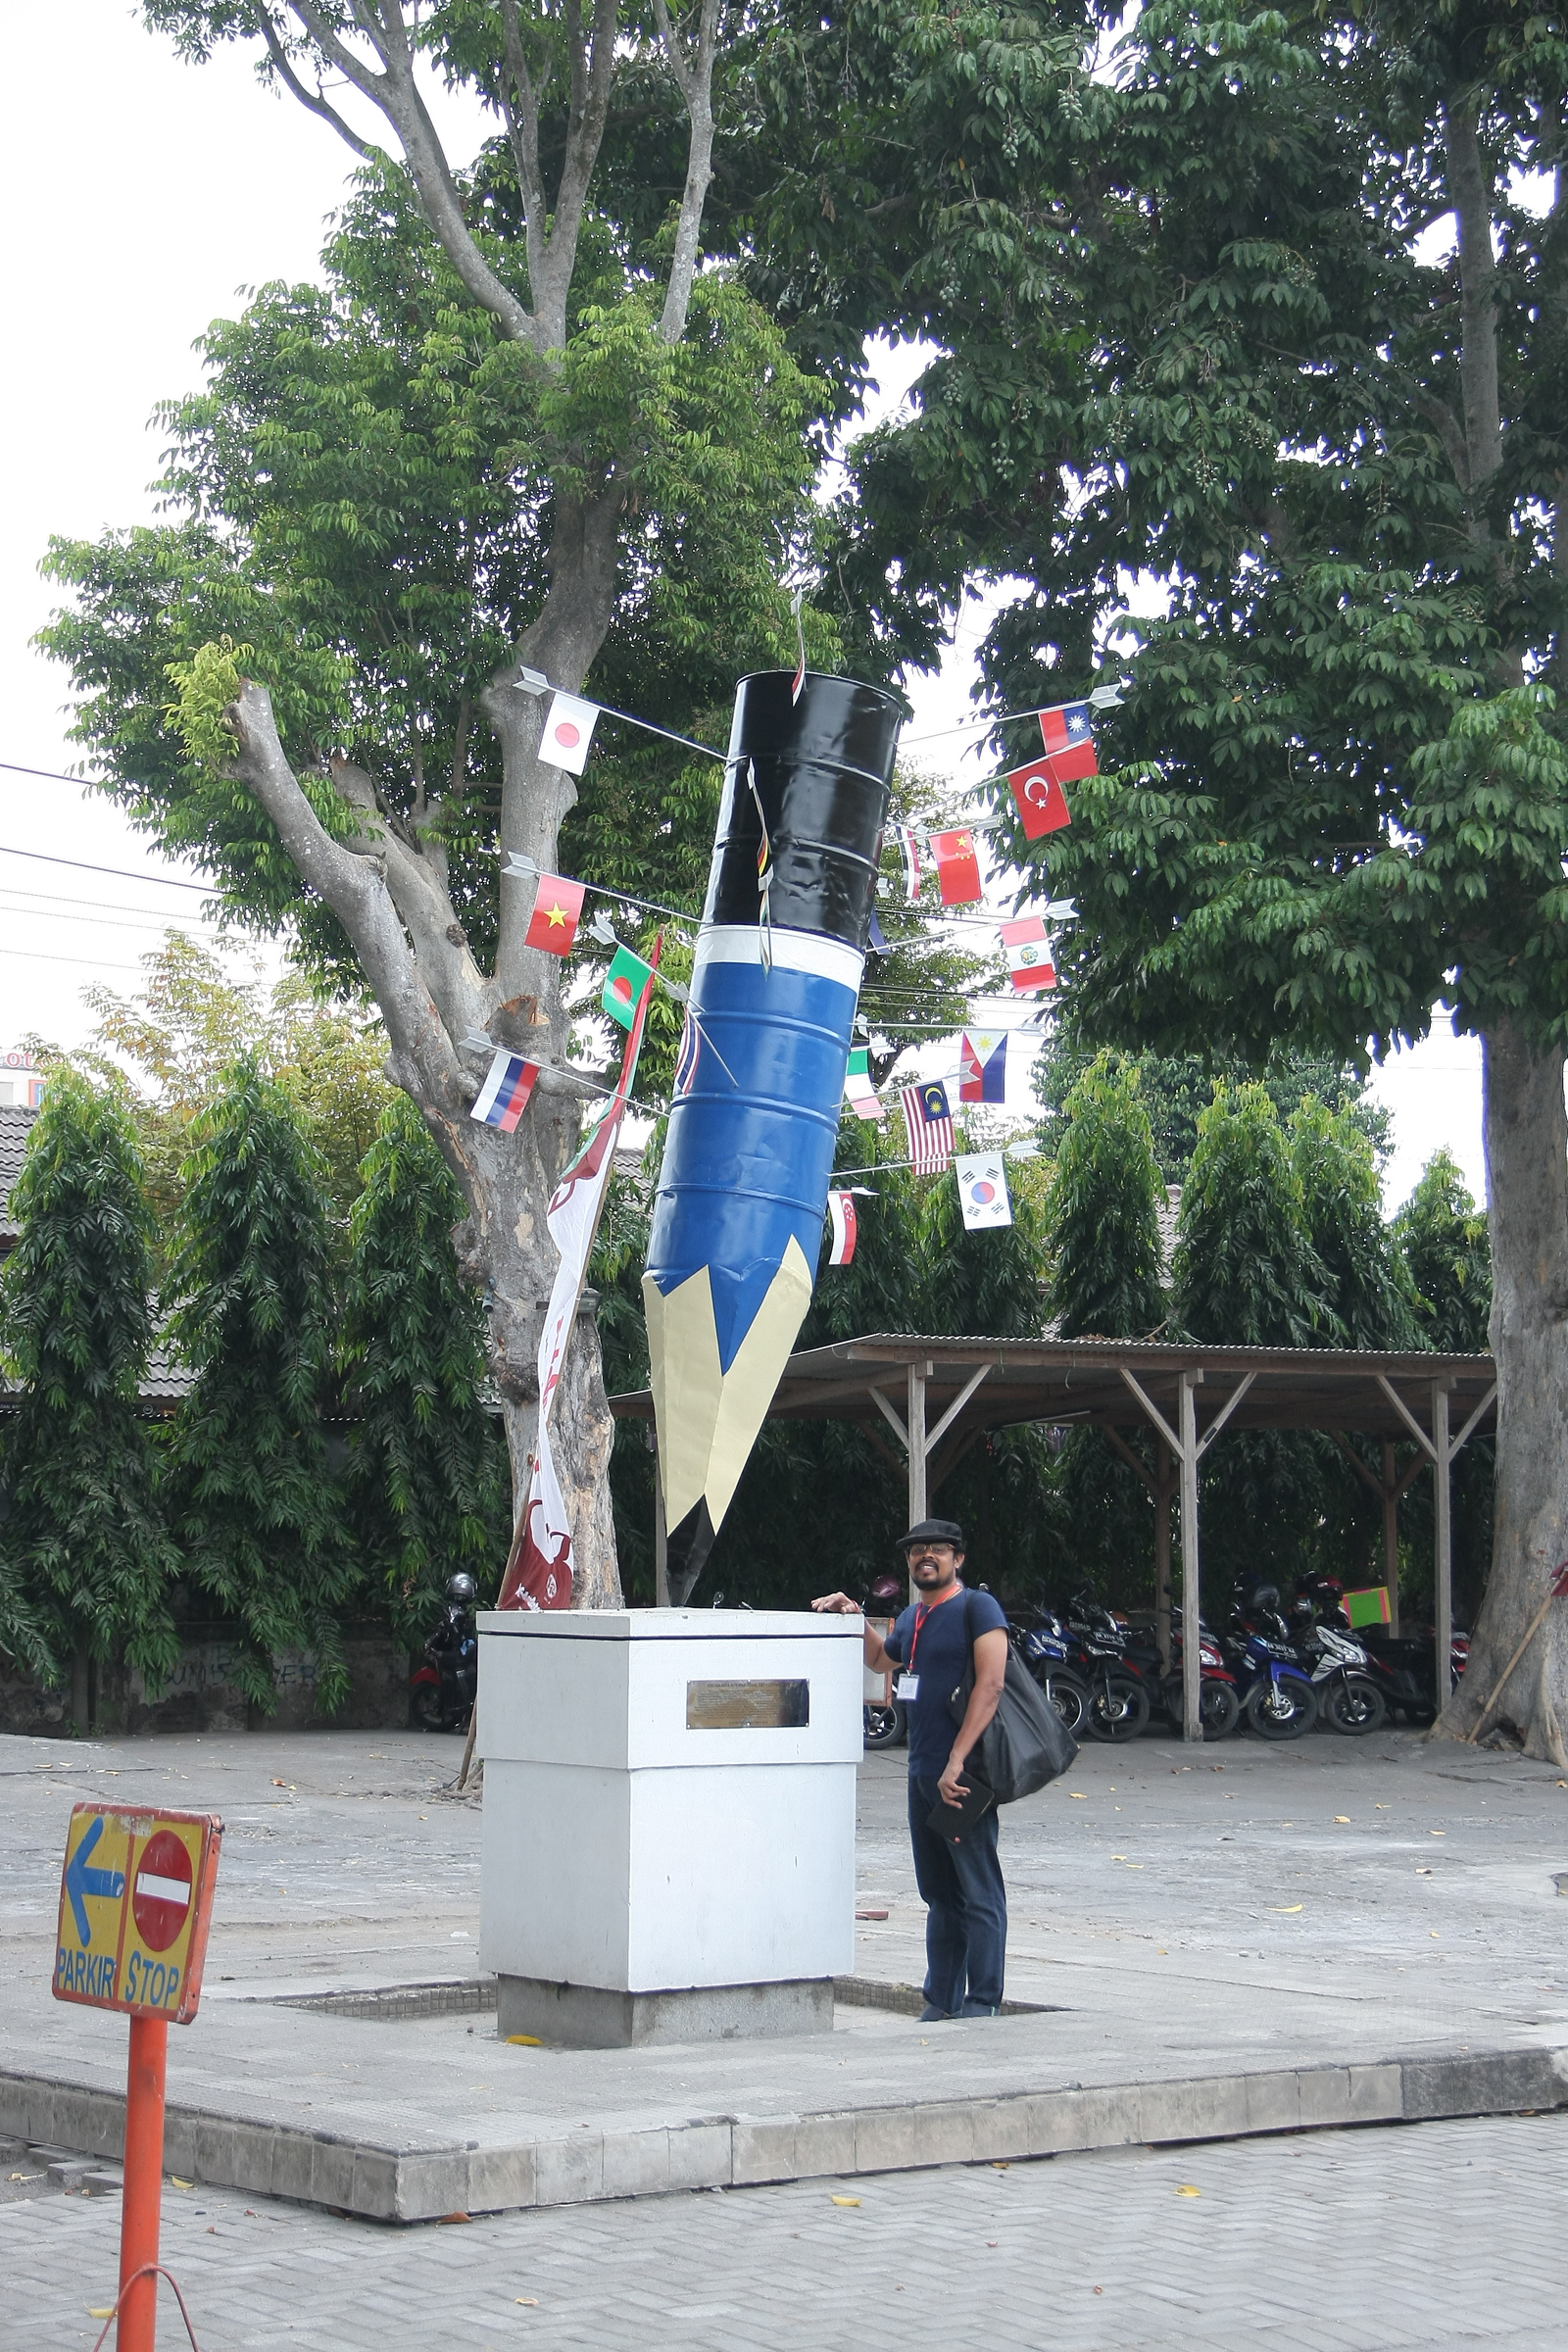 a_Asit and sculpture at Museum.jpg